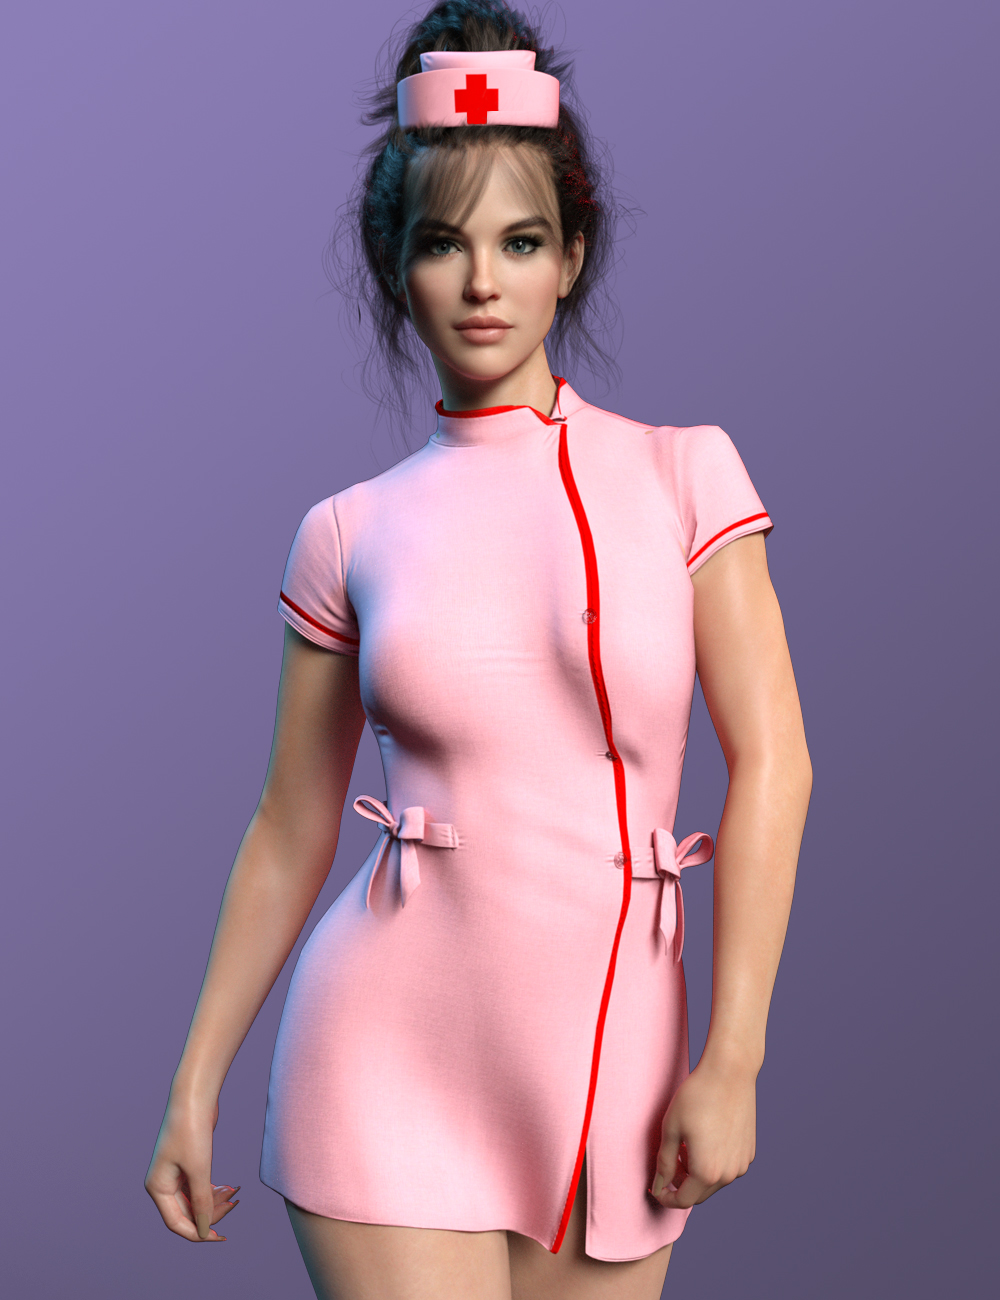 X-Fashion Uniform 06 for Genesis 8 and 8.1 Females by: xtrart-3d, 3D Models by Daz 3D